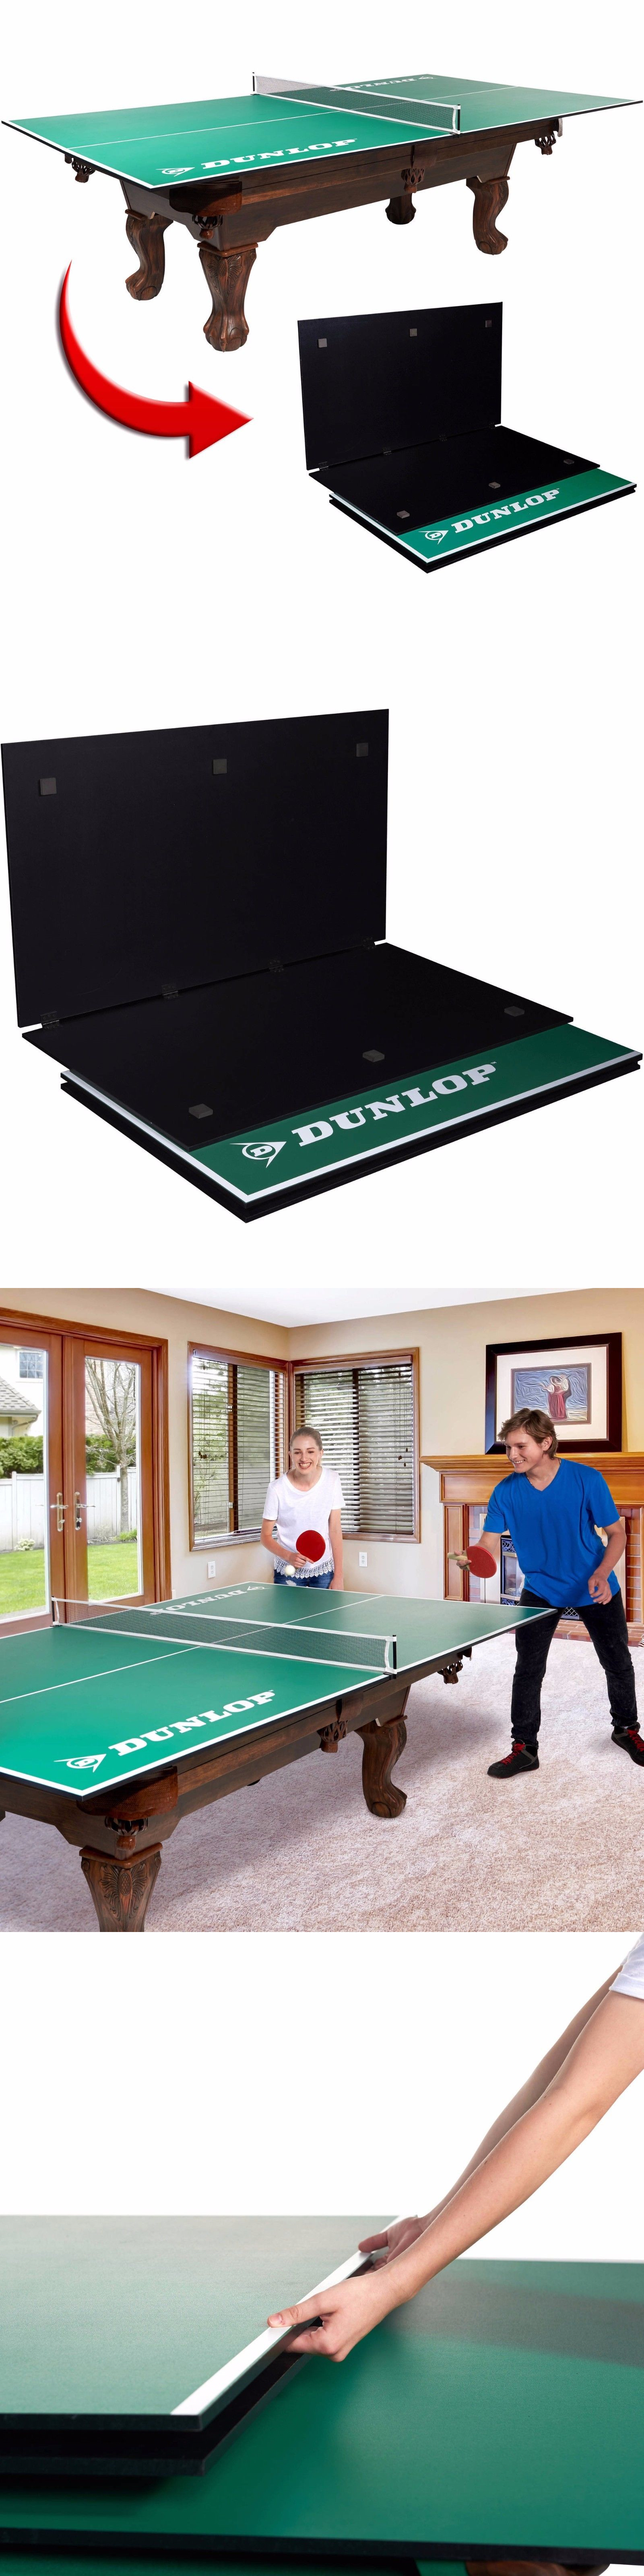 Tables 97075: Dunlop 4 Piece Table Tennis Conversion Top New (Tax Free)